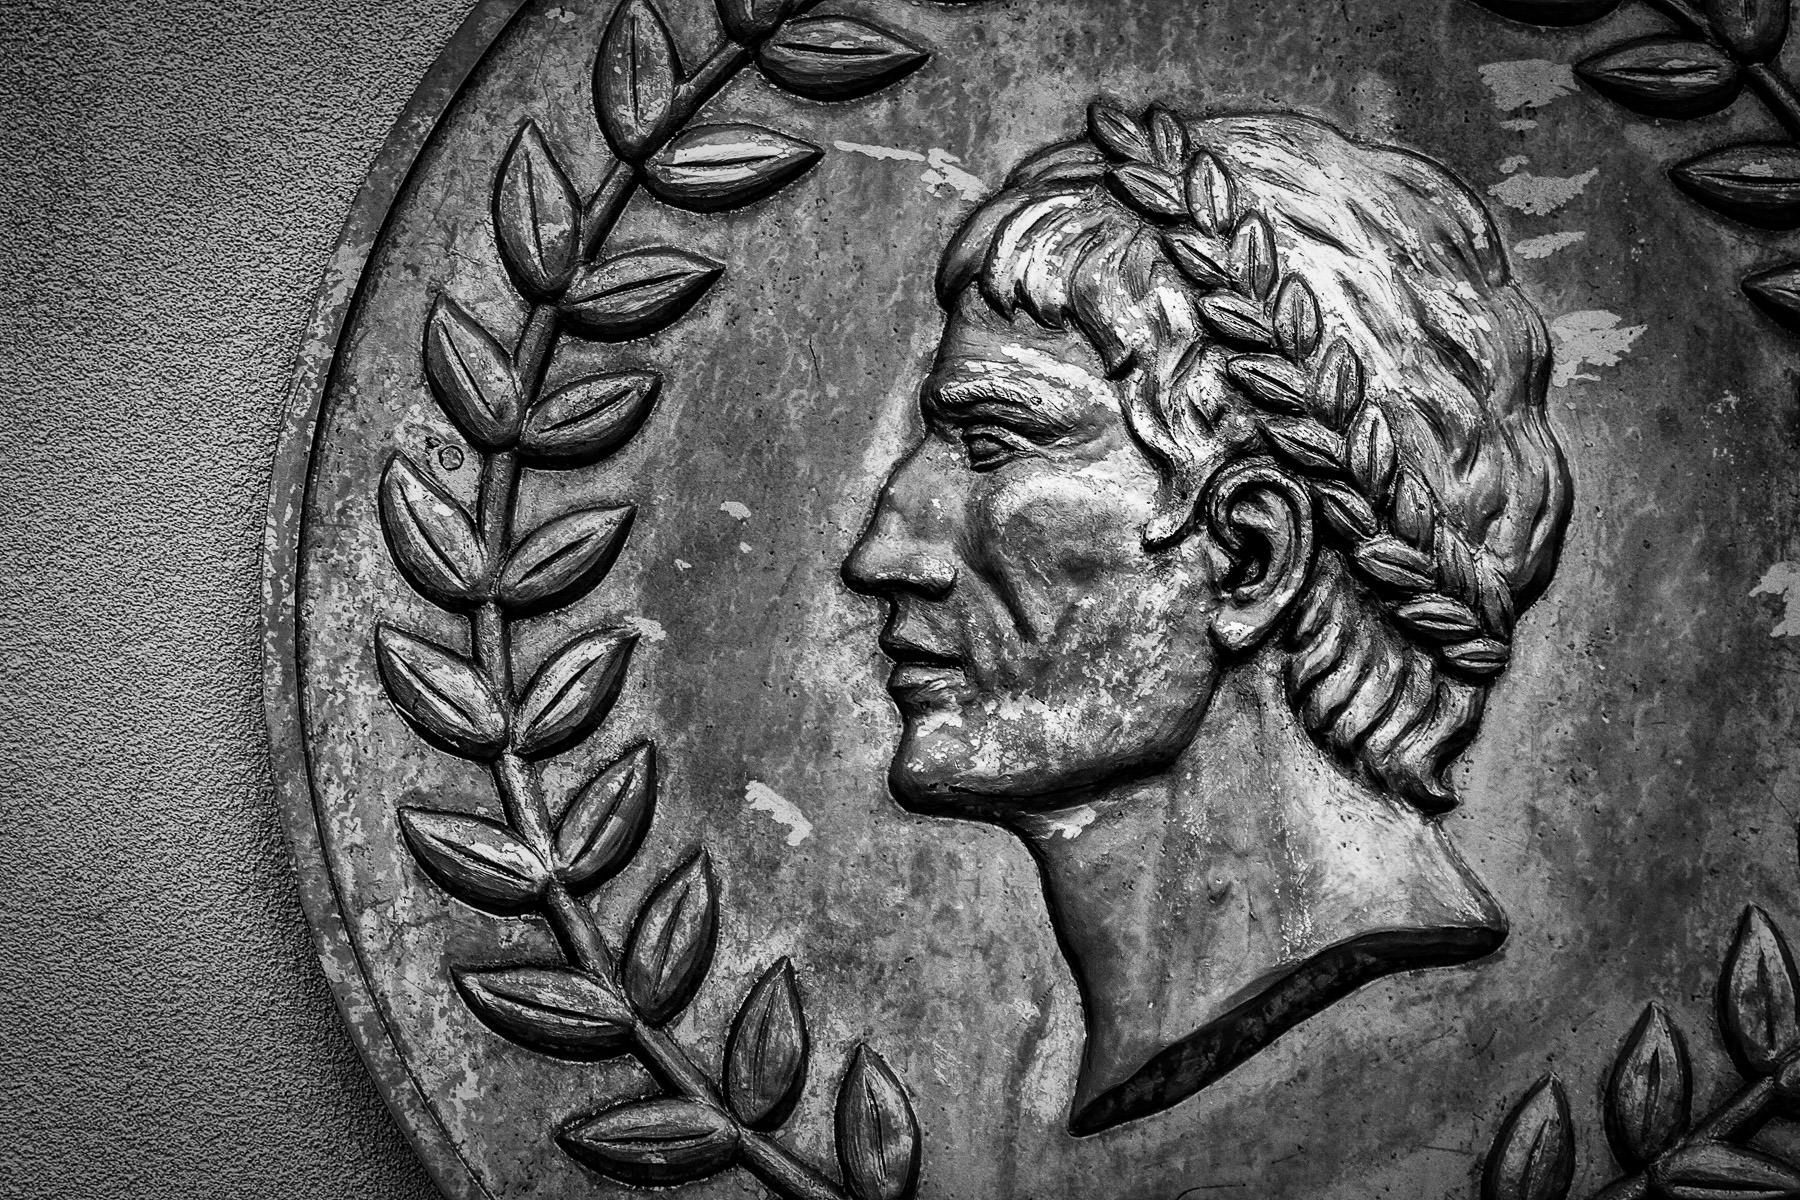 A medallion depicting the profile of Julius Caesar on an exterior wall of Caesars Palace, Las Vegas.